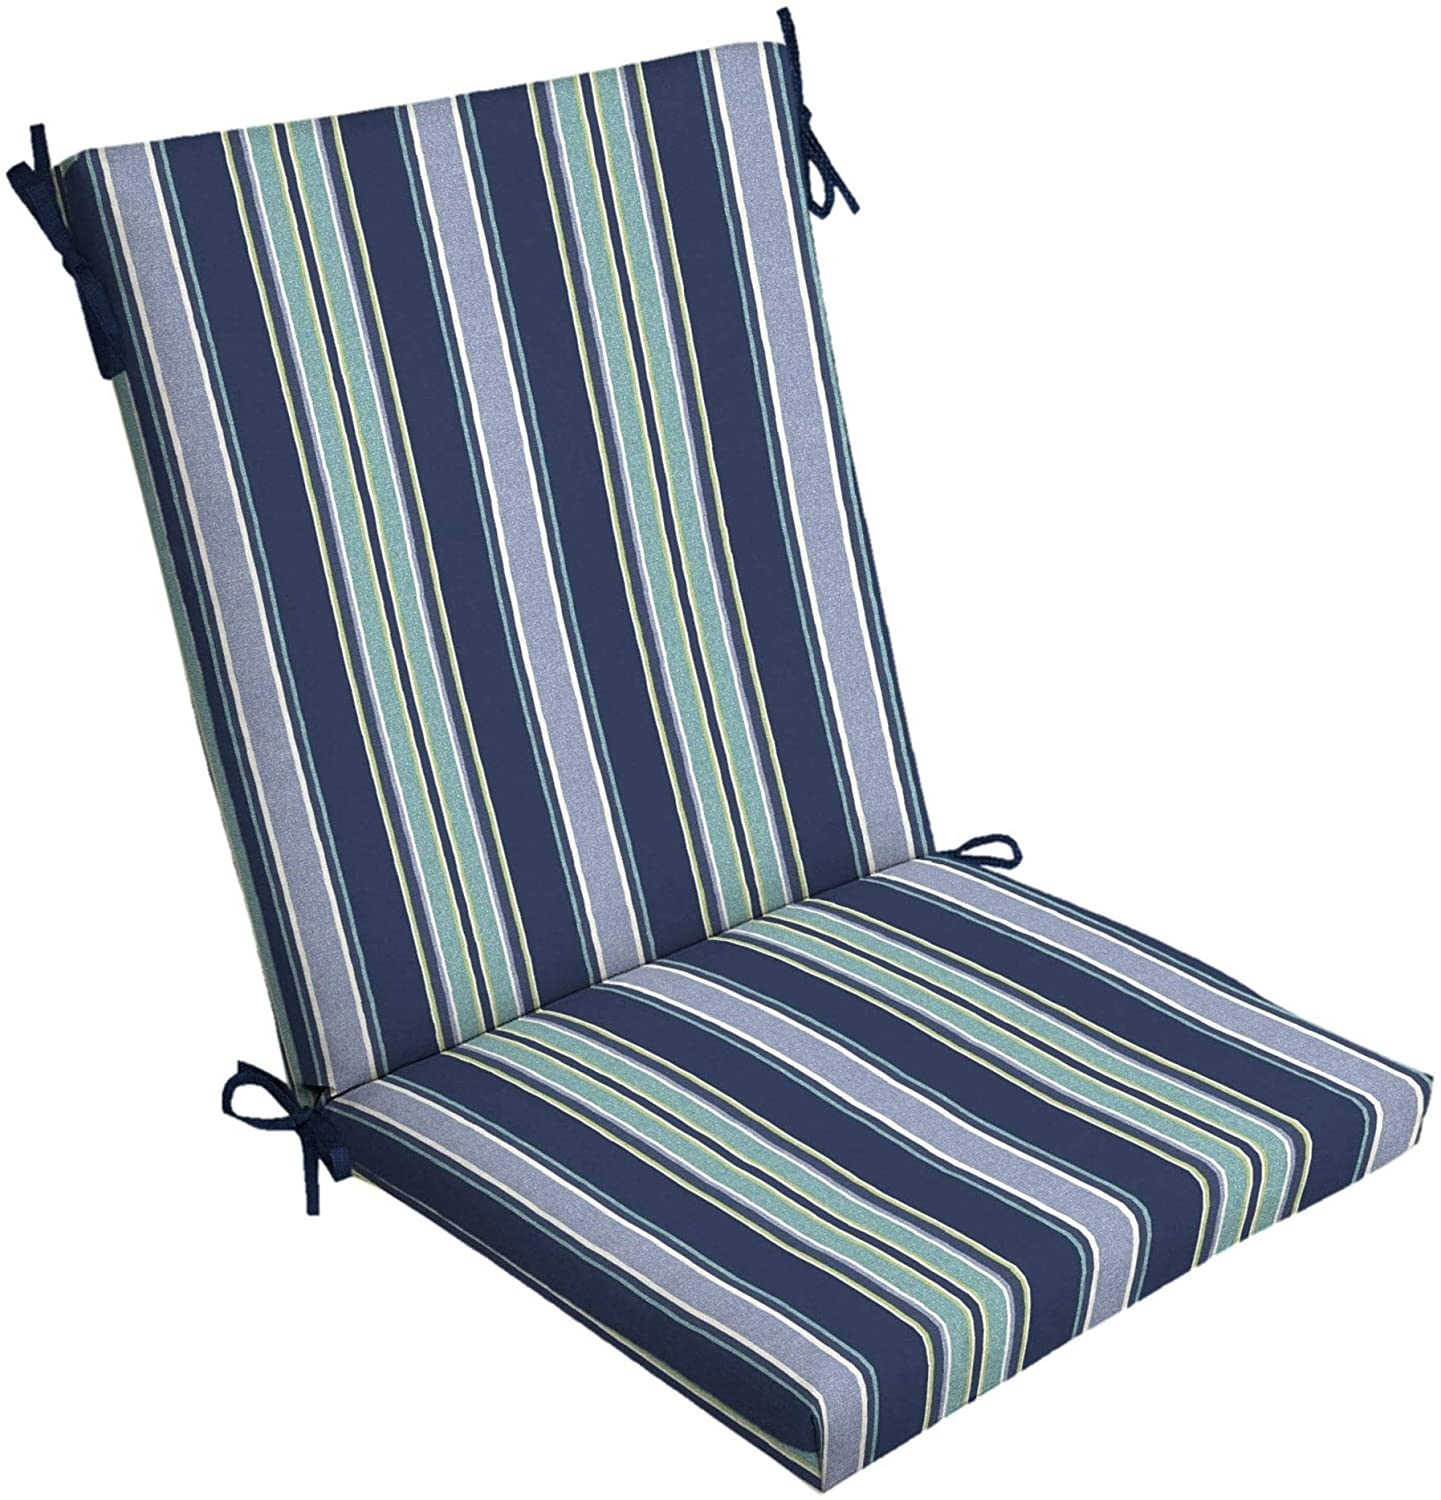 Sapphire Stripe Outdoor Chair Cushion Blue Striped Traditional Polyester Uv Resistant